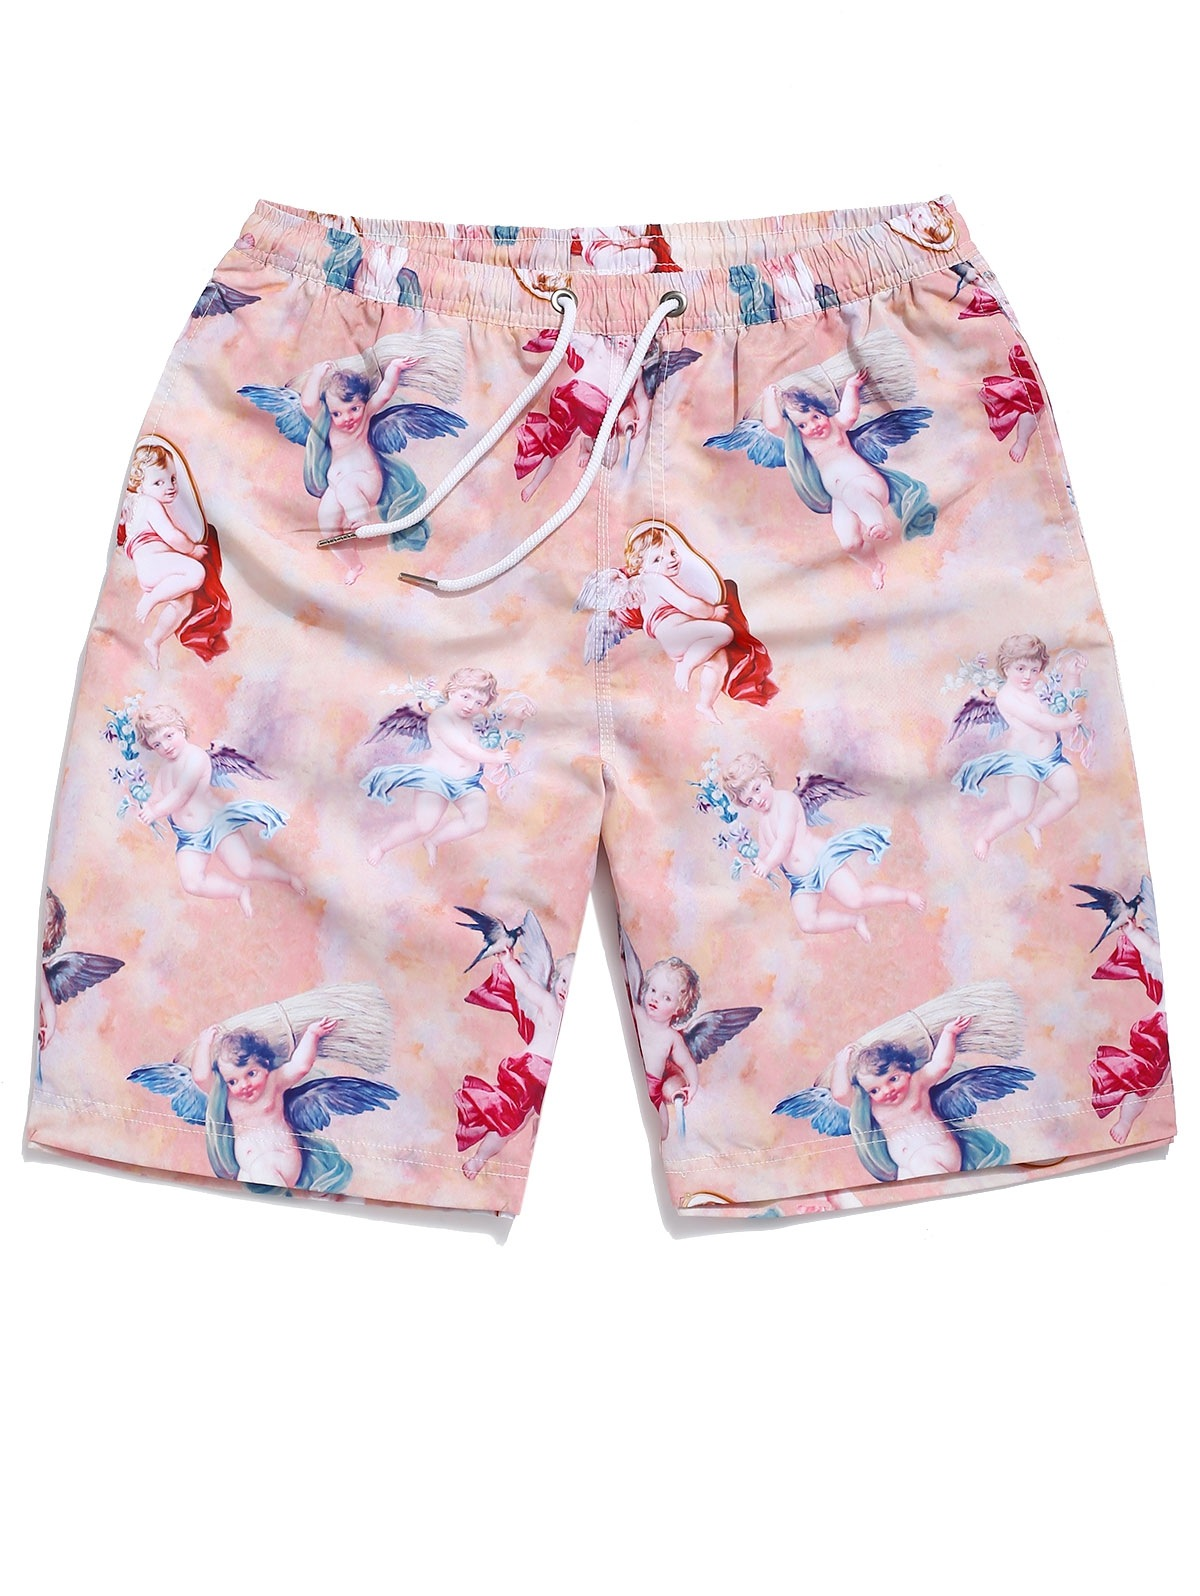 Angel Print Drawstring Beach Shorts